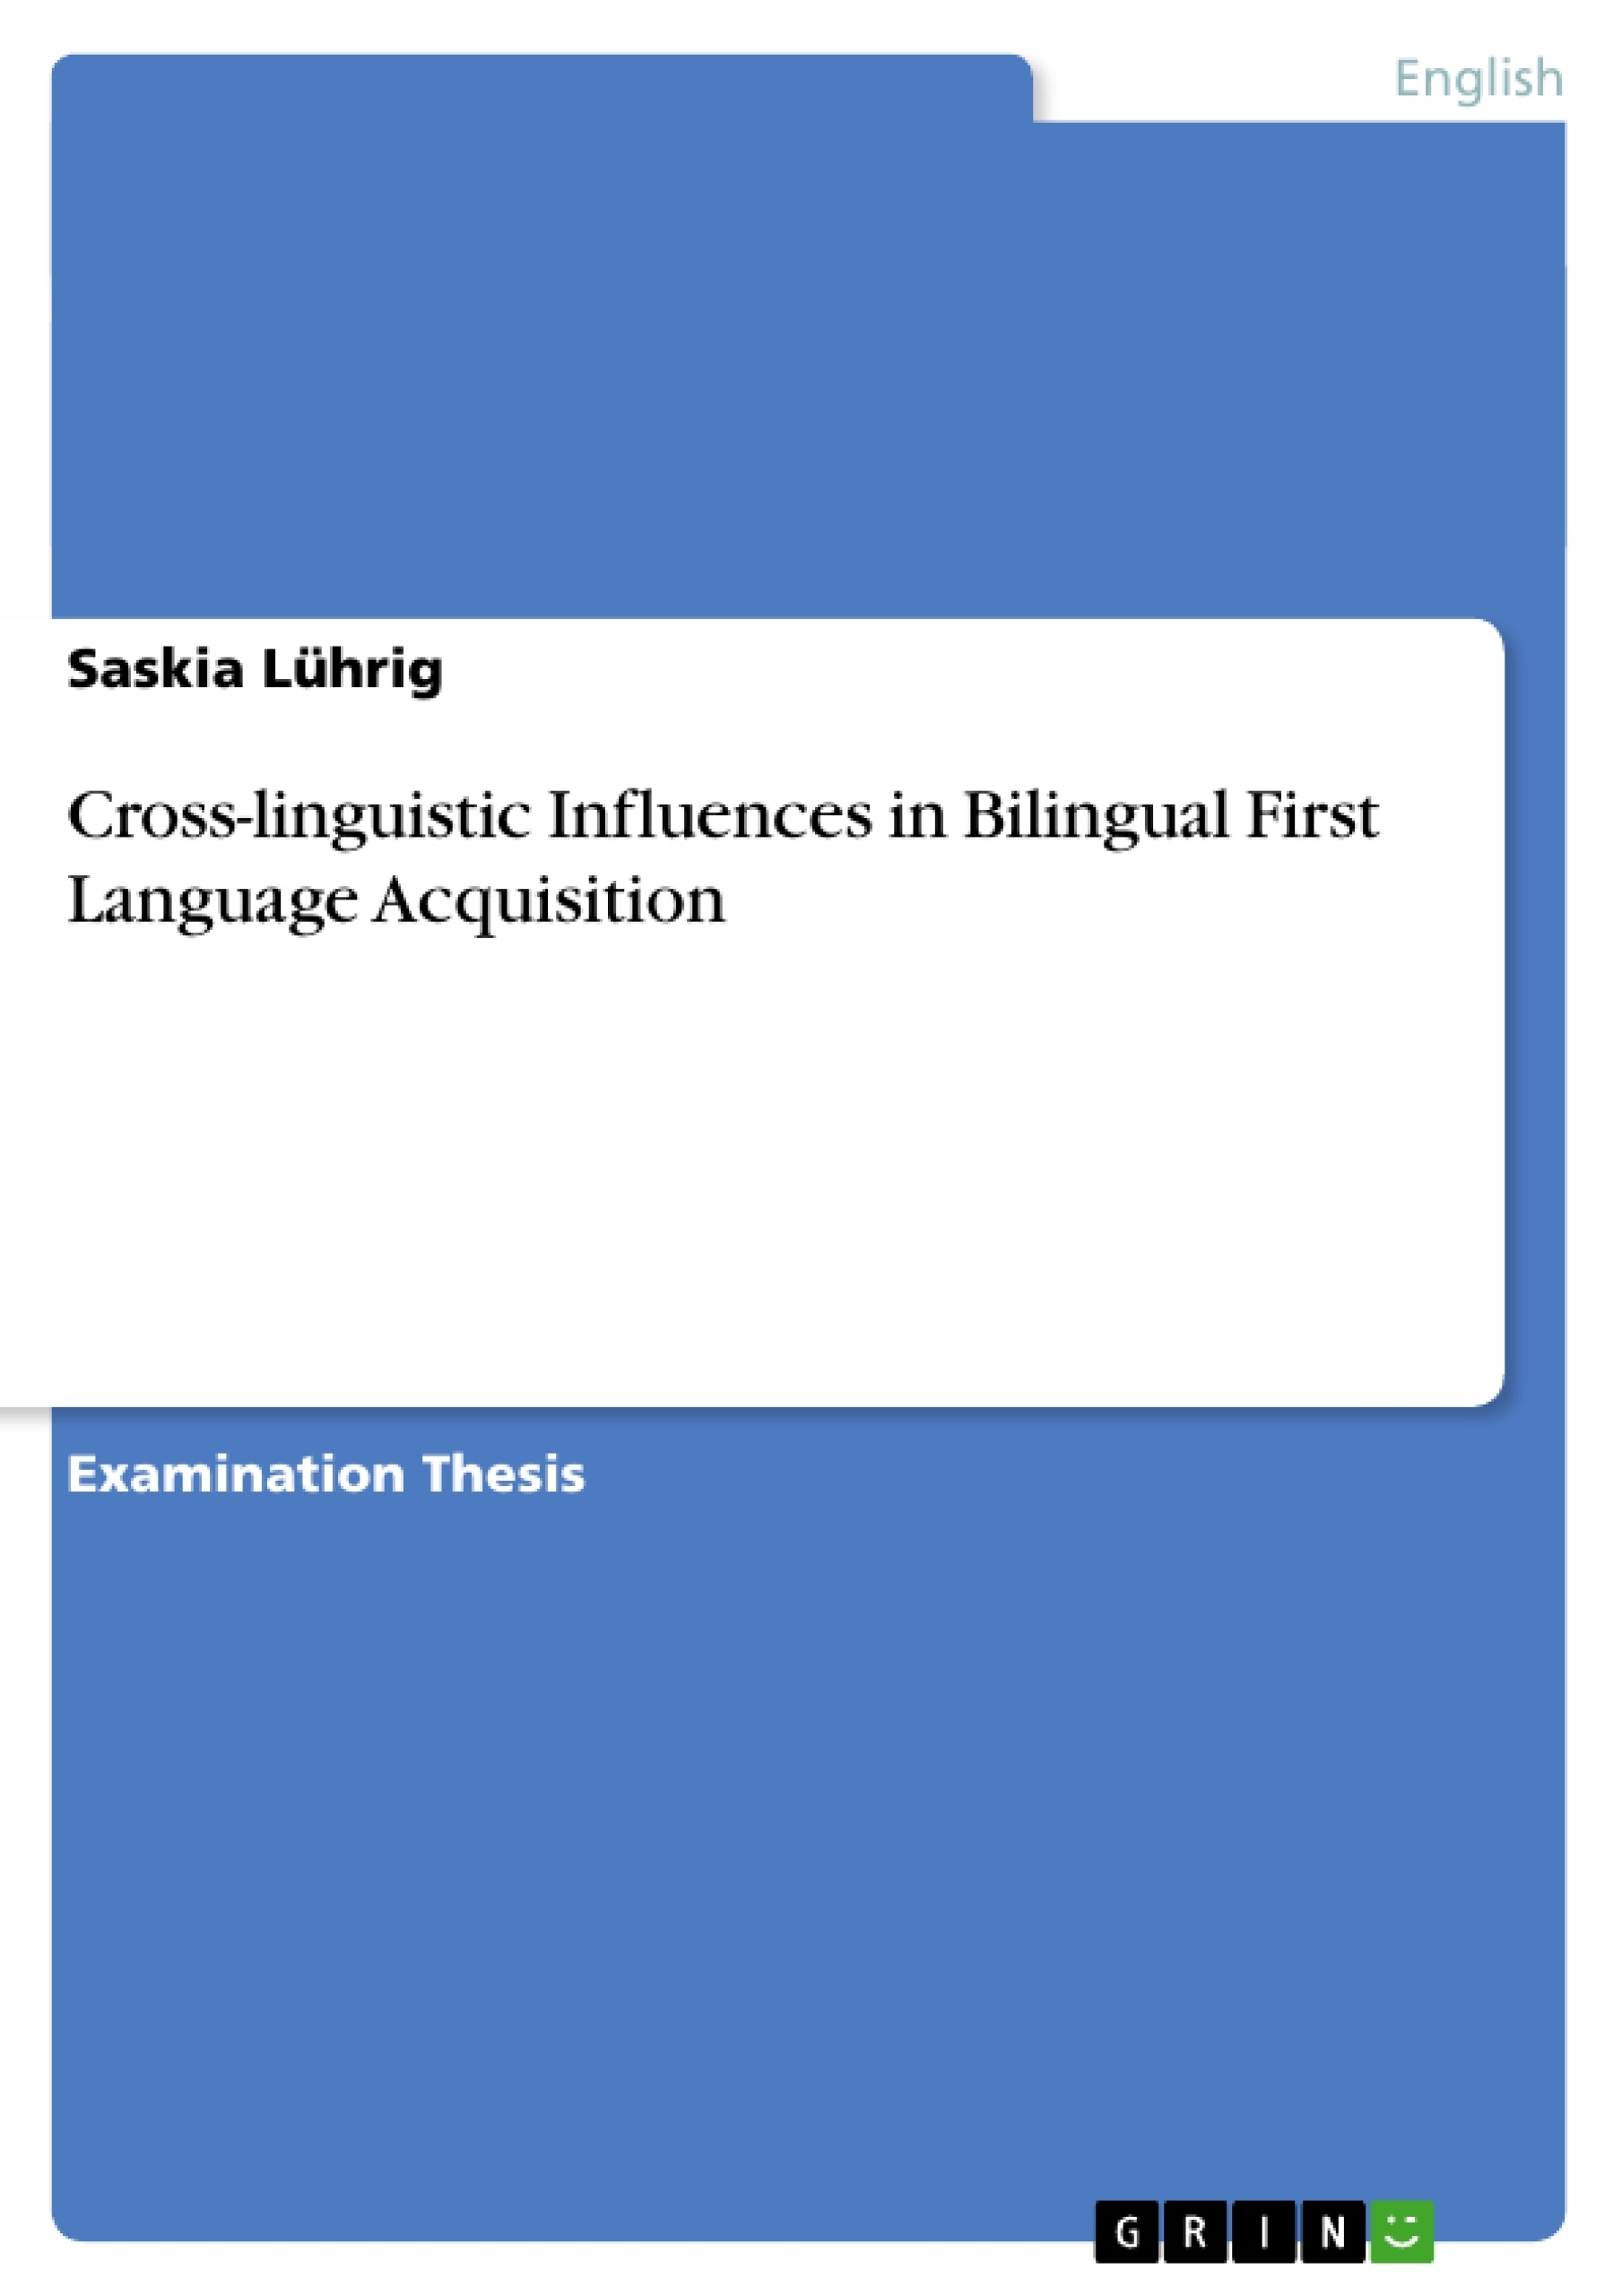 Cross-linguistic Influences in Bilingual First Language Acquisition